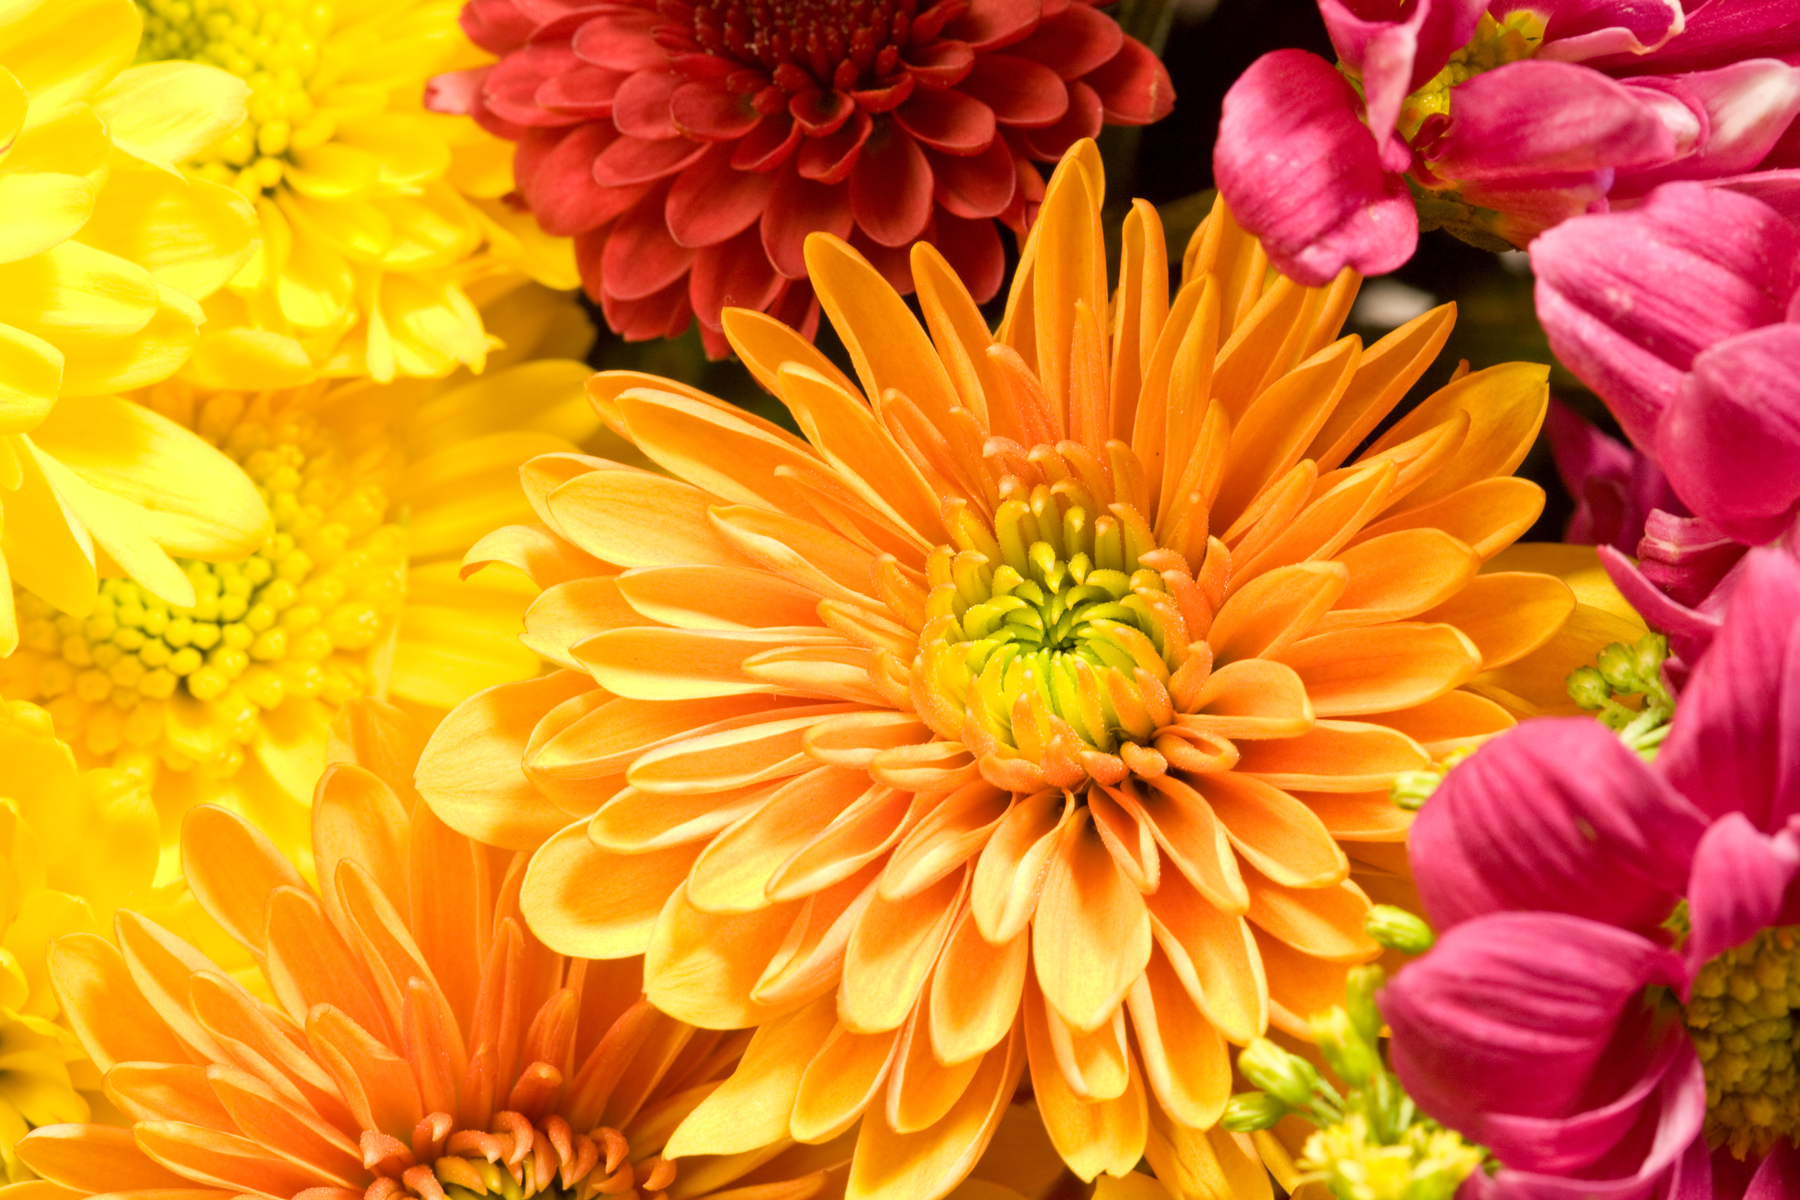 orange and pink chrysanthemum flowers